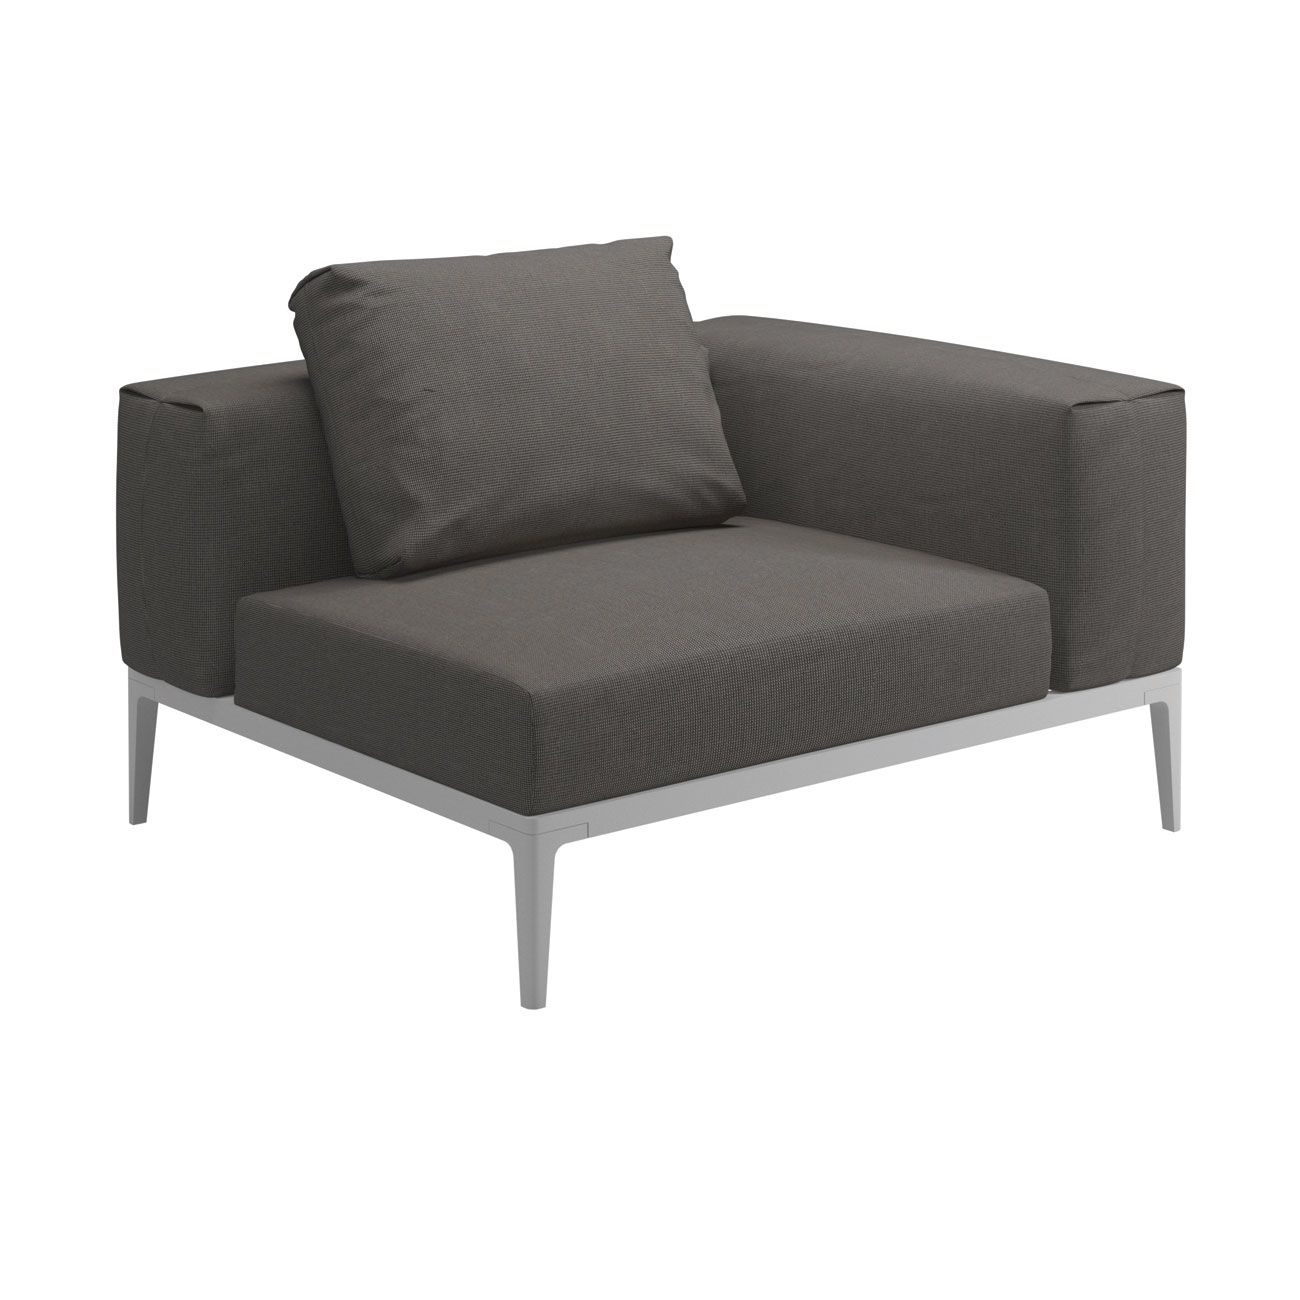 gloster grid modular sofa corner unit luxury outdoor